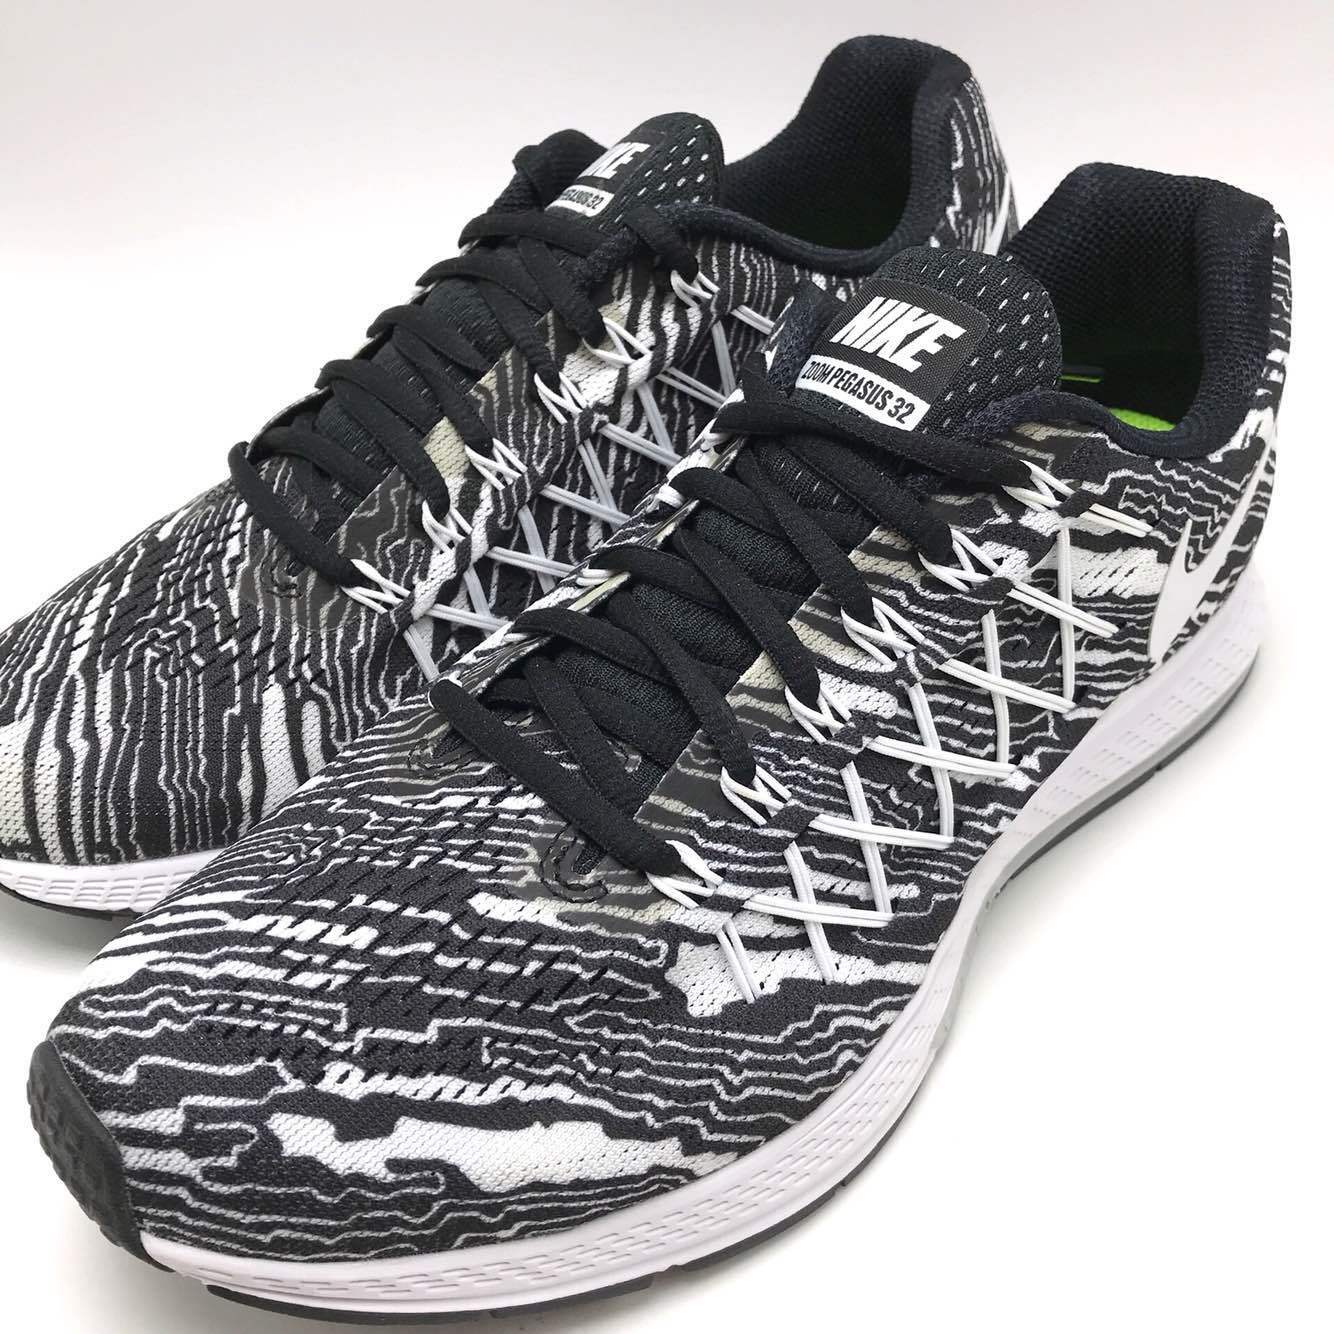 NIKE AIR ZOOM PEGASUS 32 PRINT Black/White Men's Running 806805 001 Box tear